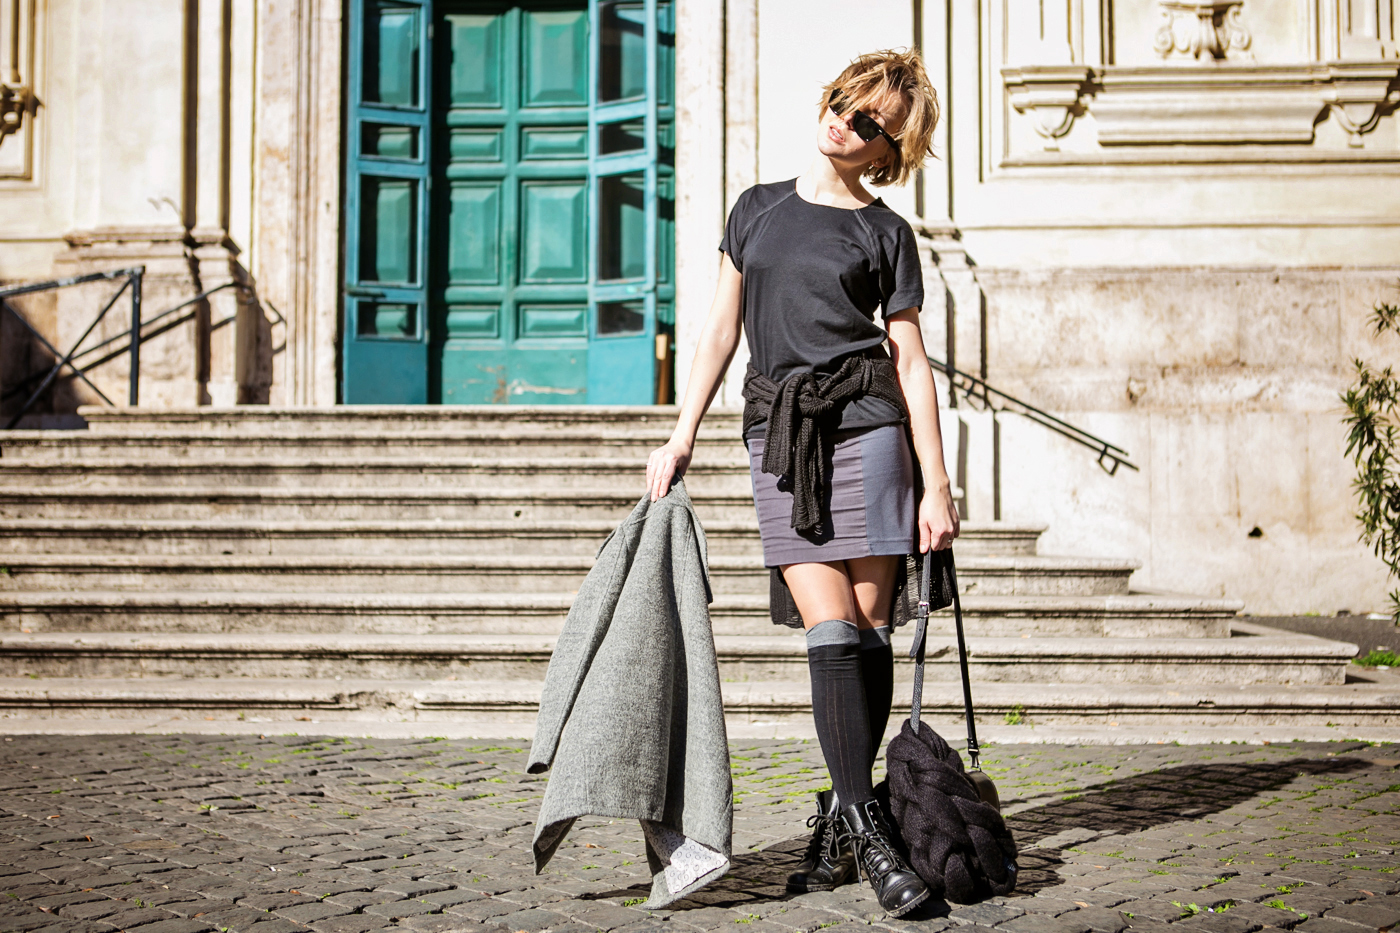 darya kamalova from thecablook com during the trip to Rome walking in the center of the city and wearing chicwish grey coat and laced up booties with proenza schouler ps11 black leather bag-29